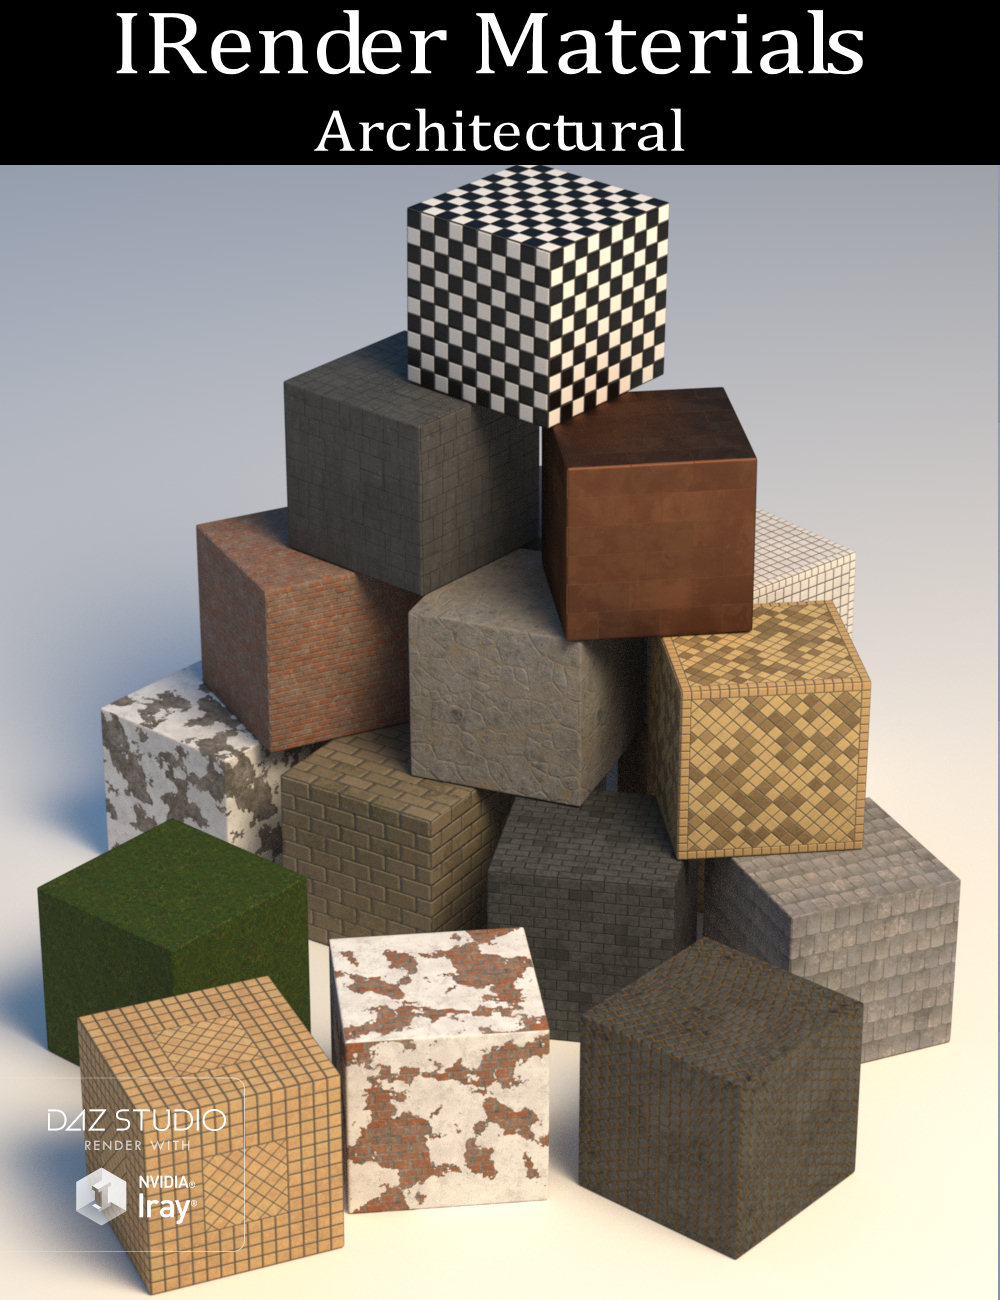 IRender Materials: Architectural by: the3dwizard, 3D Models by Daz 3D